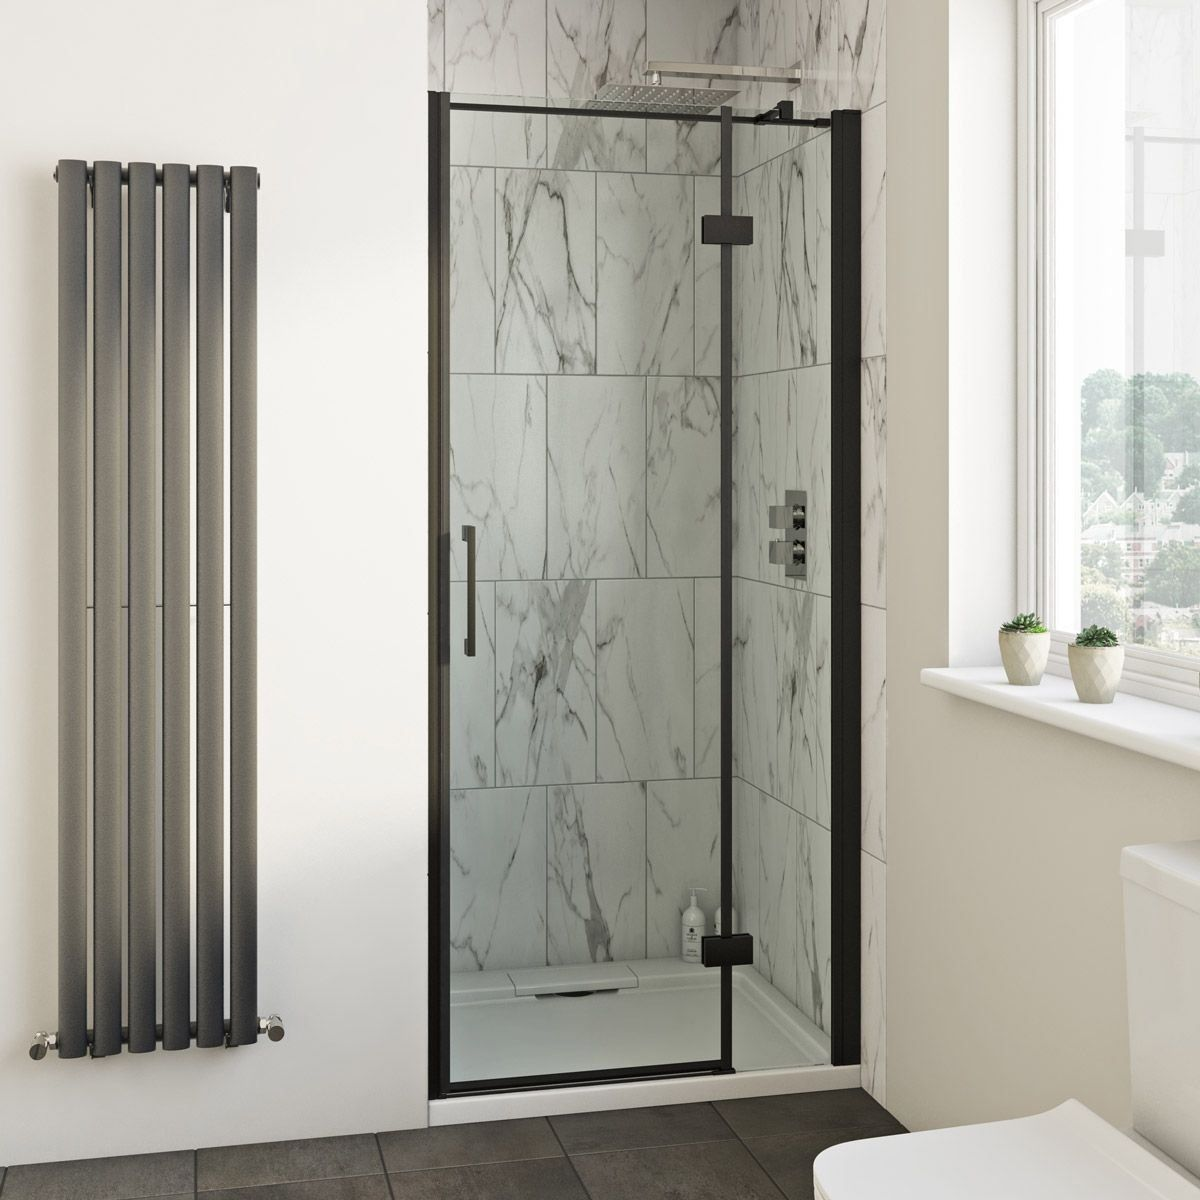 Milano Nero 1200mm Shower Sliding Door 800mm Side Panel And Tray Shower Doors Shower Enclosure Bathroom Trends